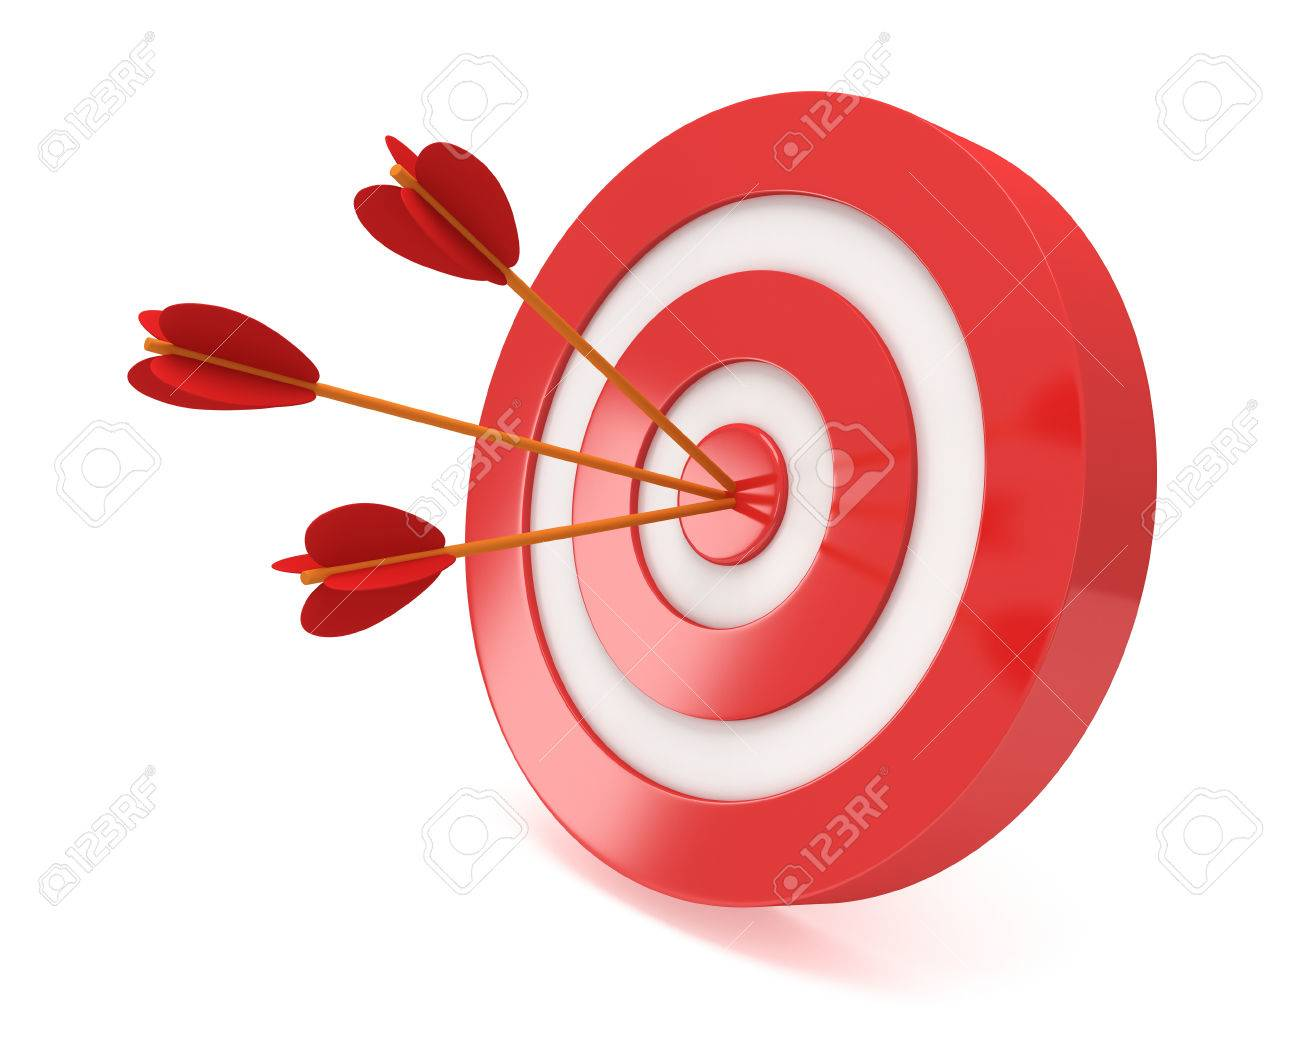 three arrows in red aim target goal luck strategy game business